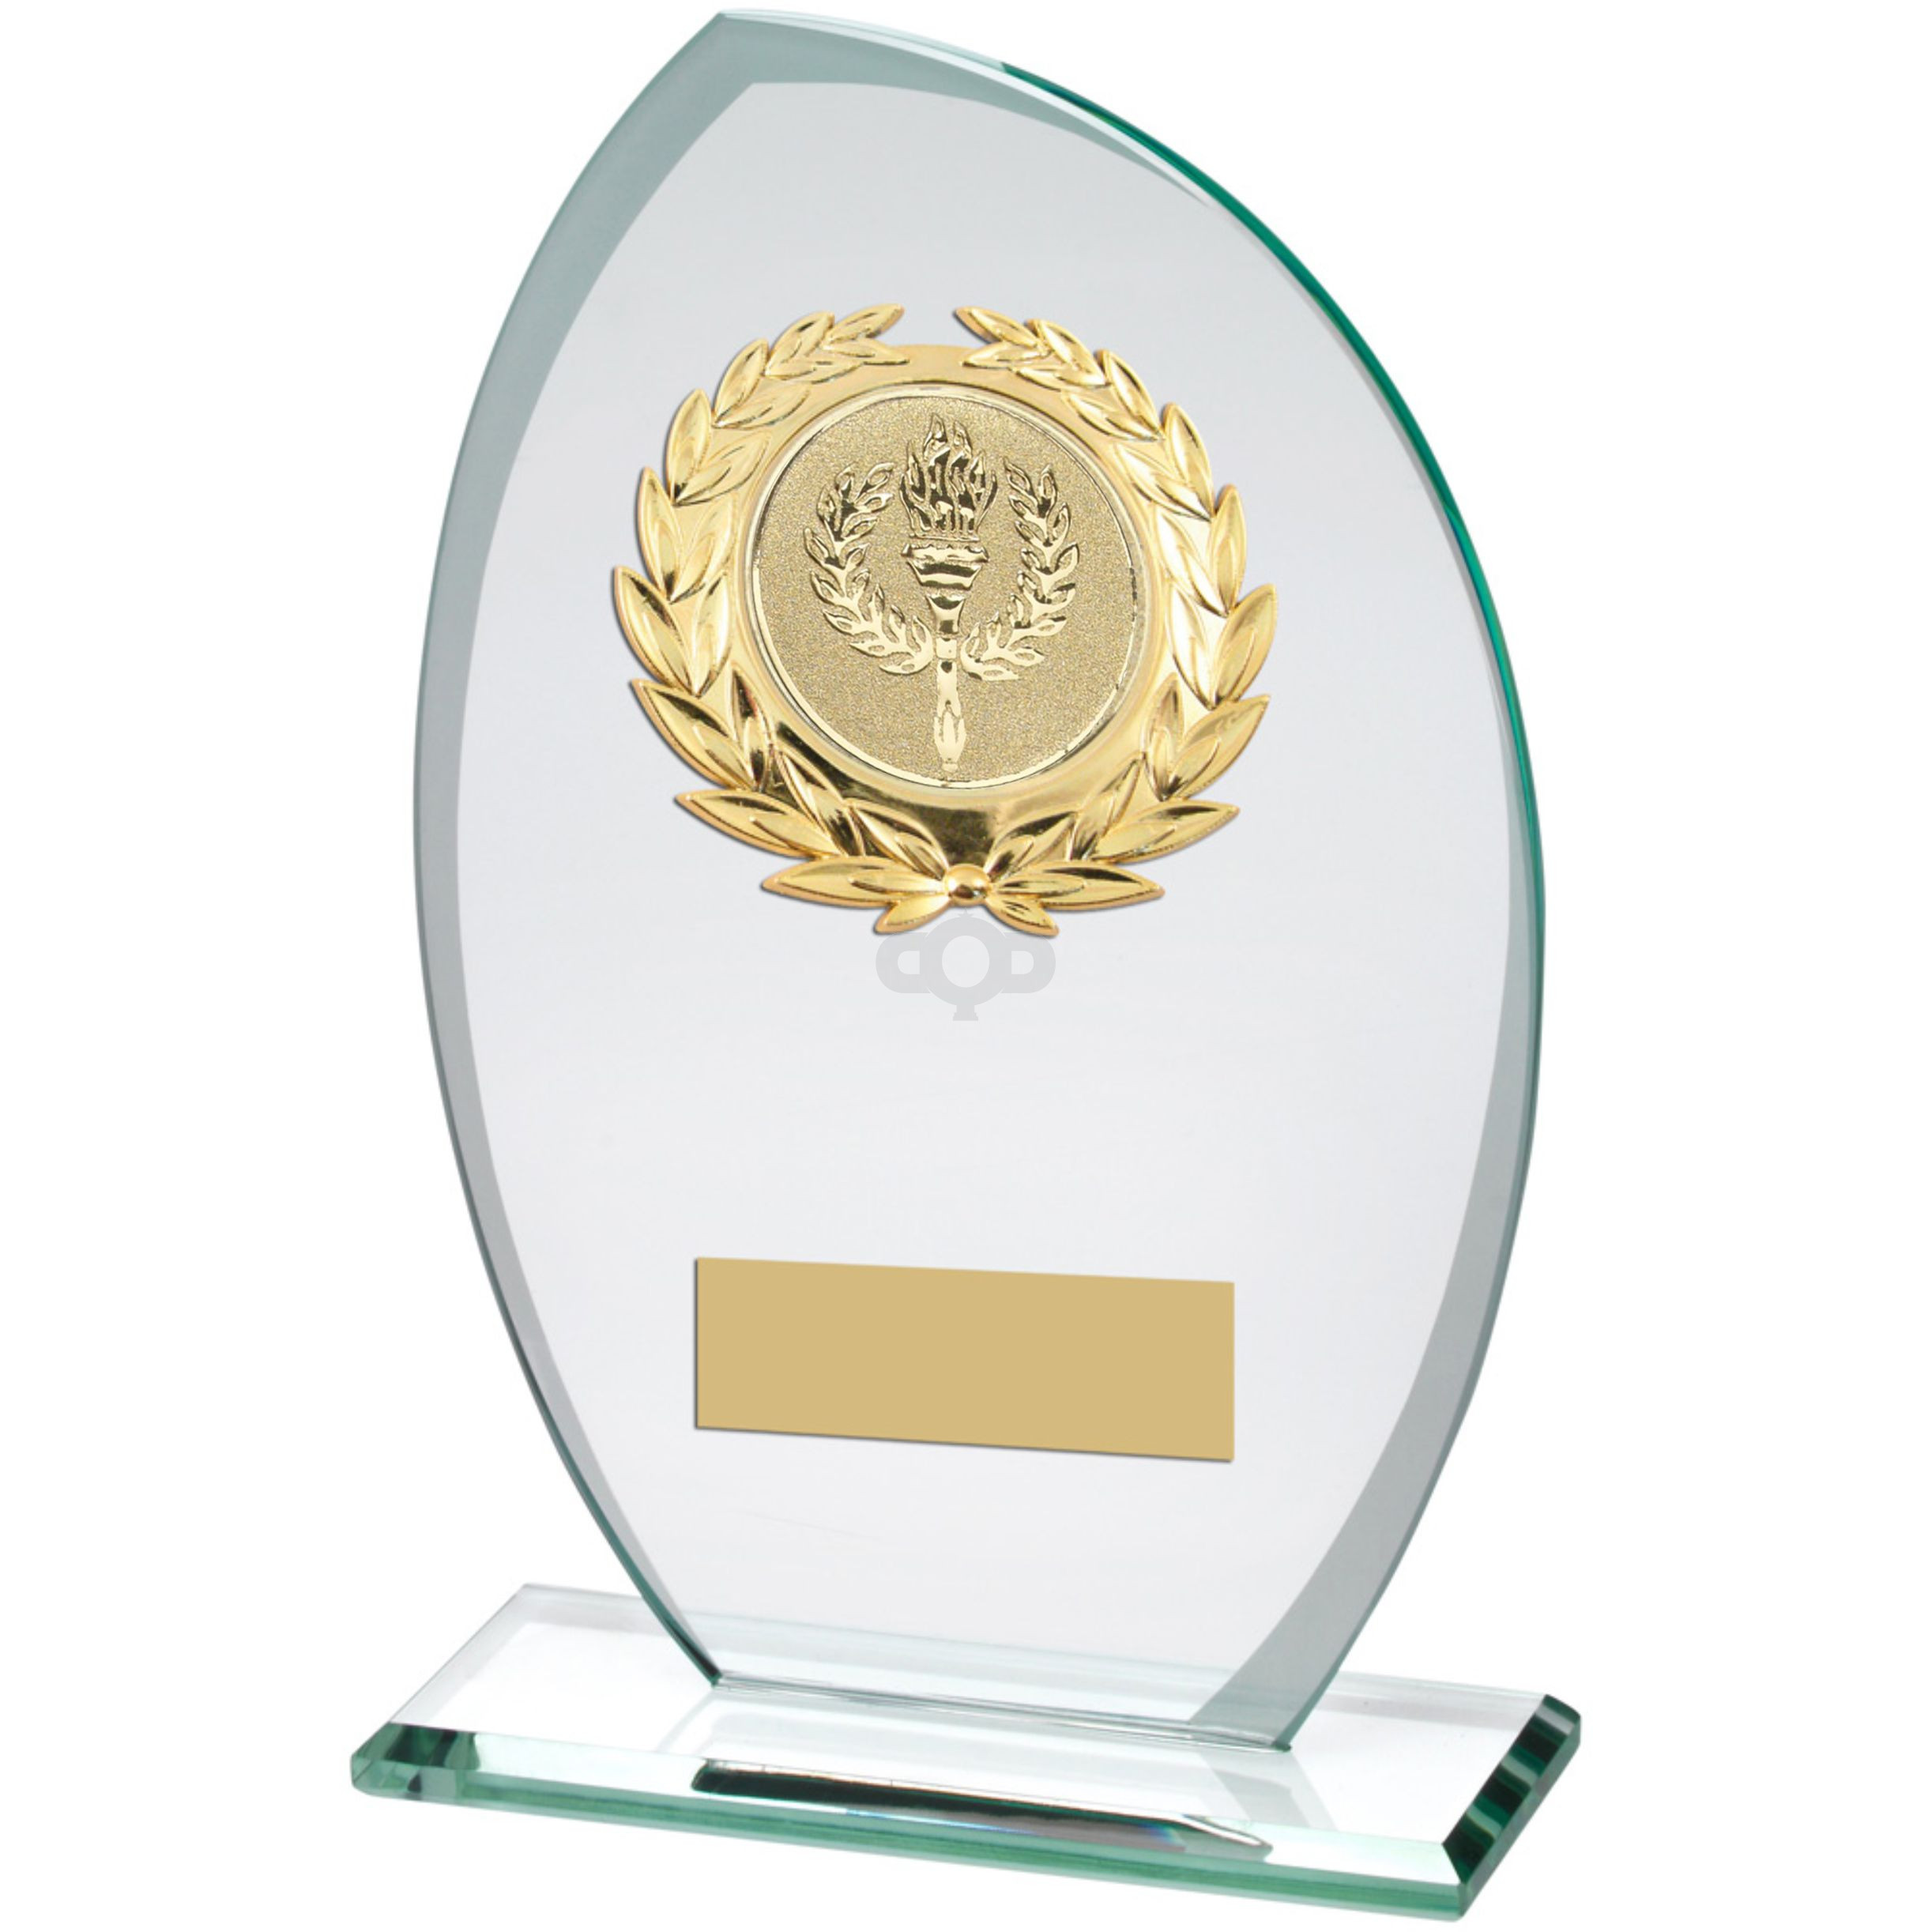 Jade Frosted Glass Plaque With Gold Trim Trophy